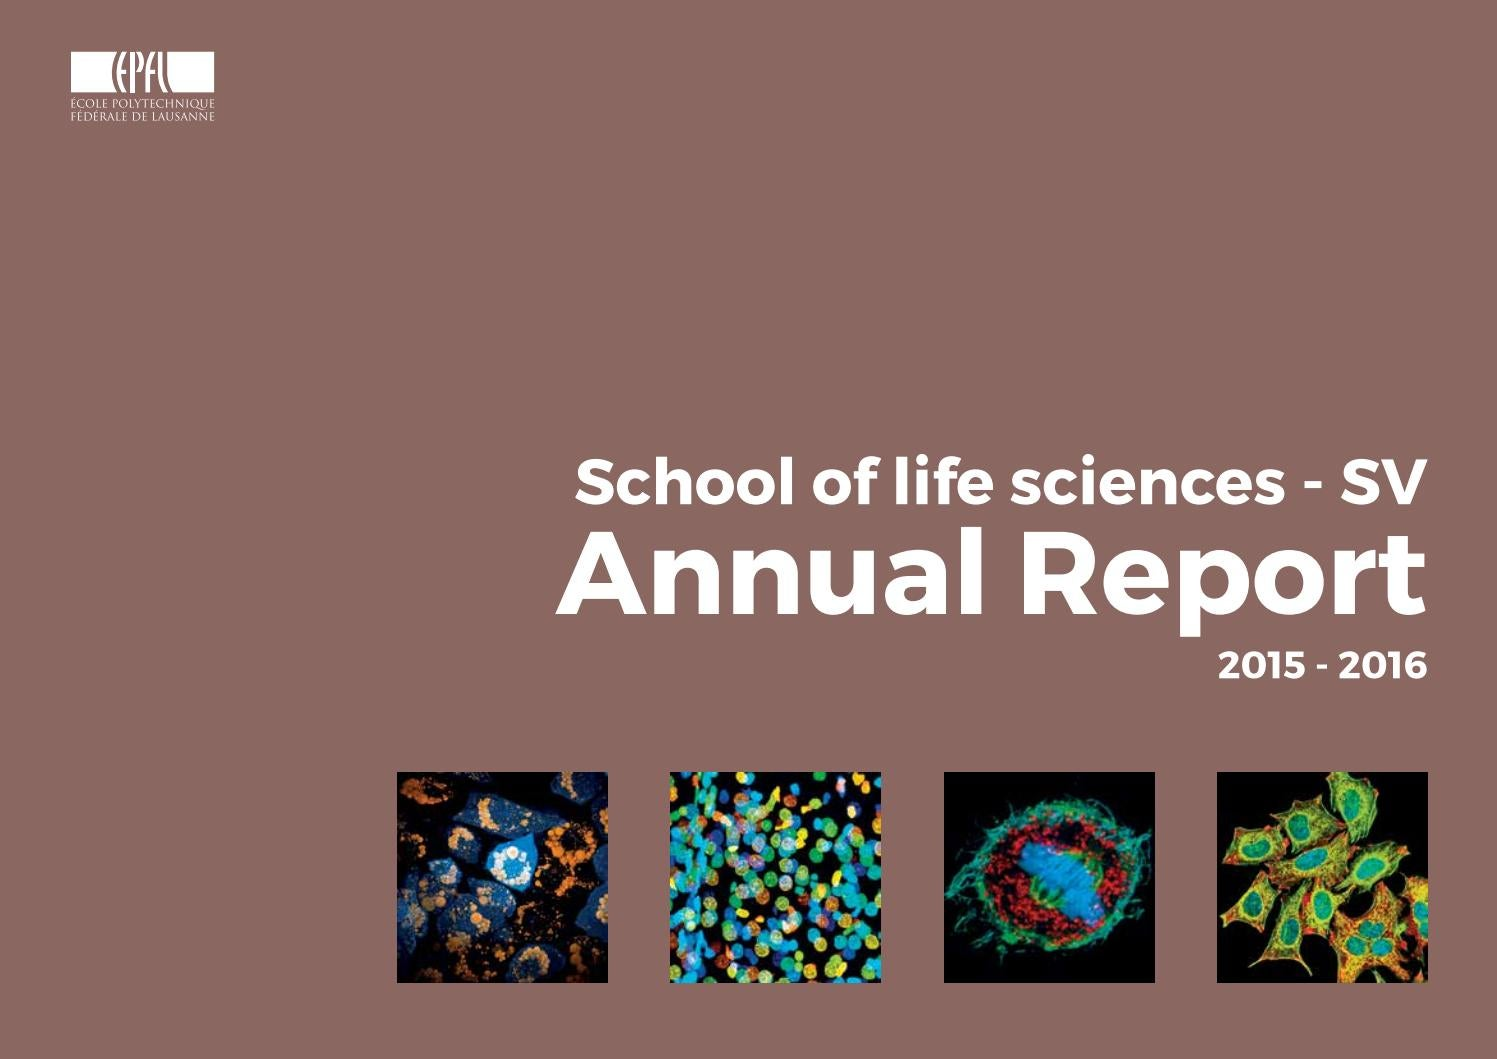 EPFL School of life sciences Annual Report 15-16 by EPFL